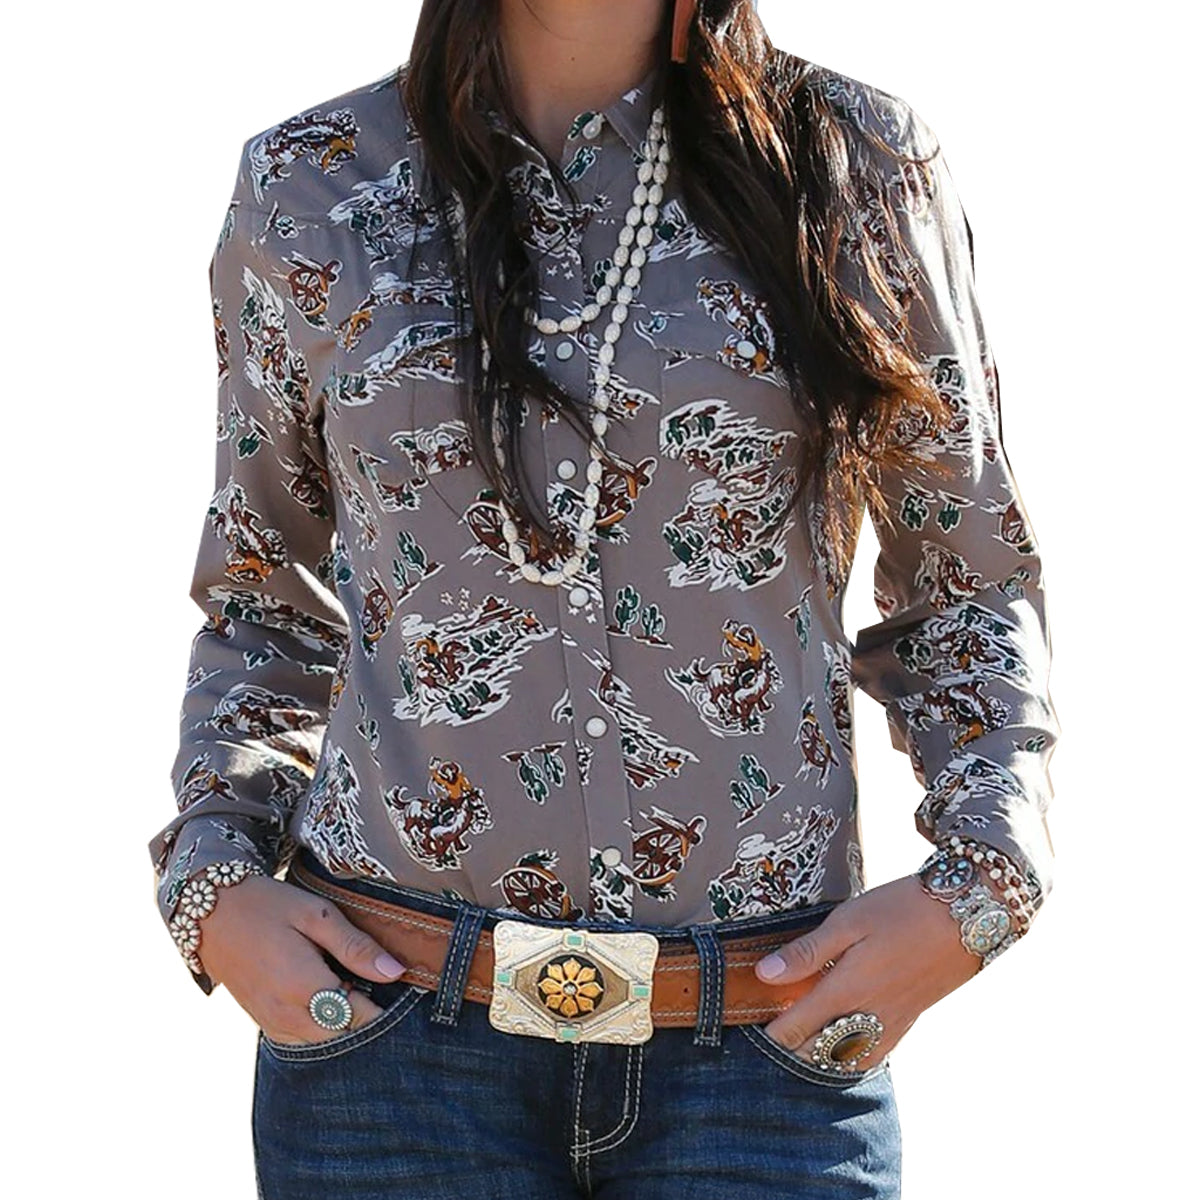 Cinch Cruel Girl Women's Long Sleeve Western Print Snap Shirt - Stone